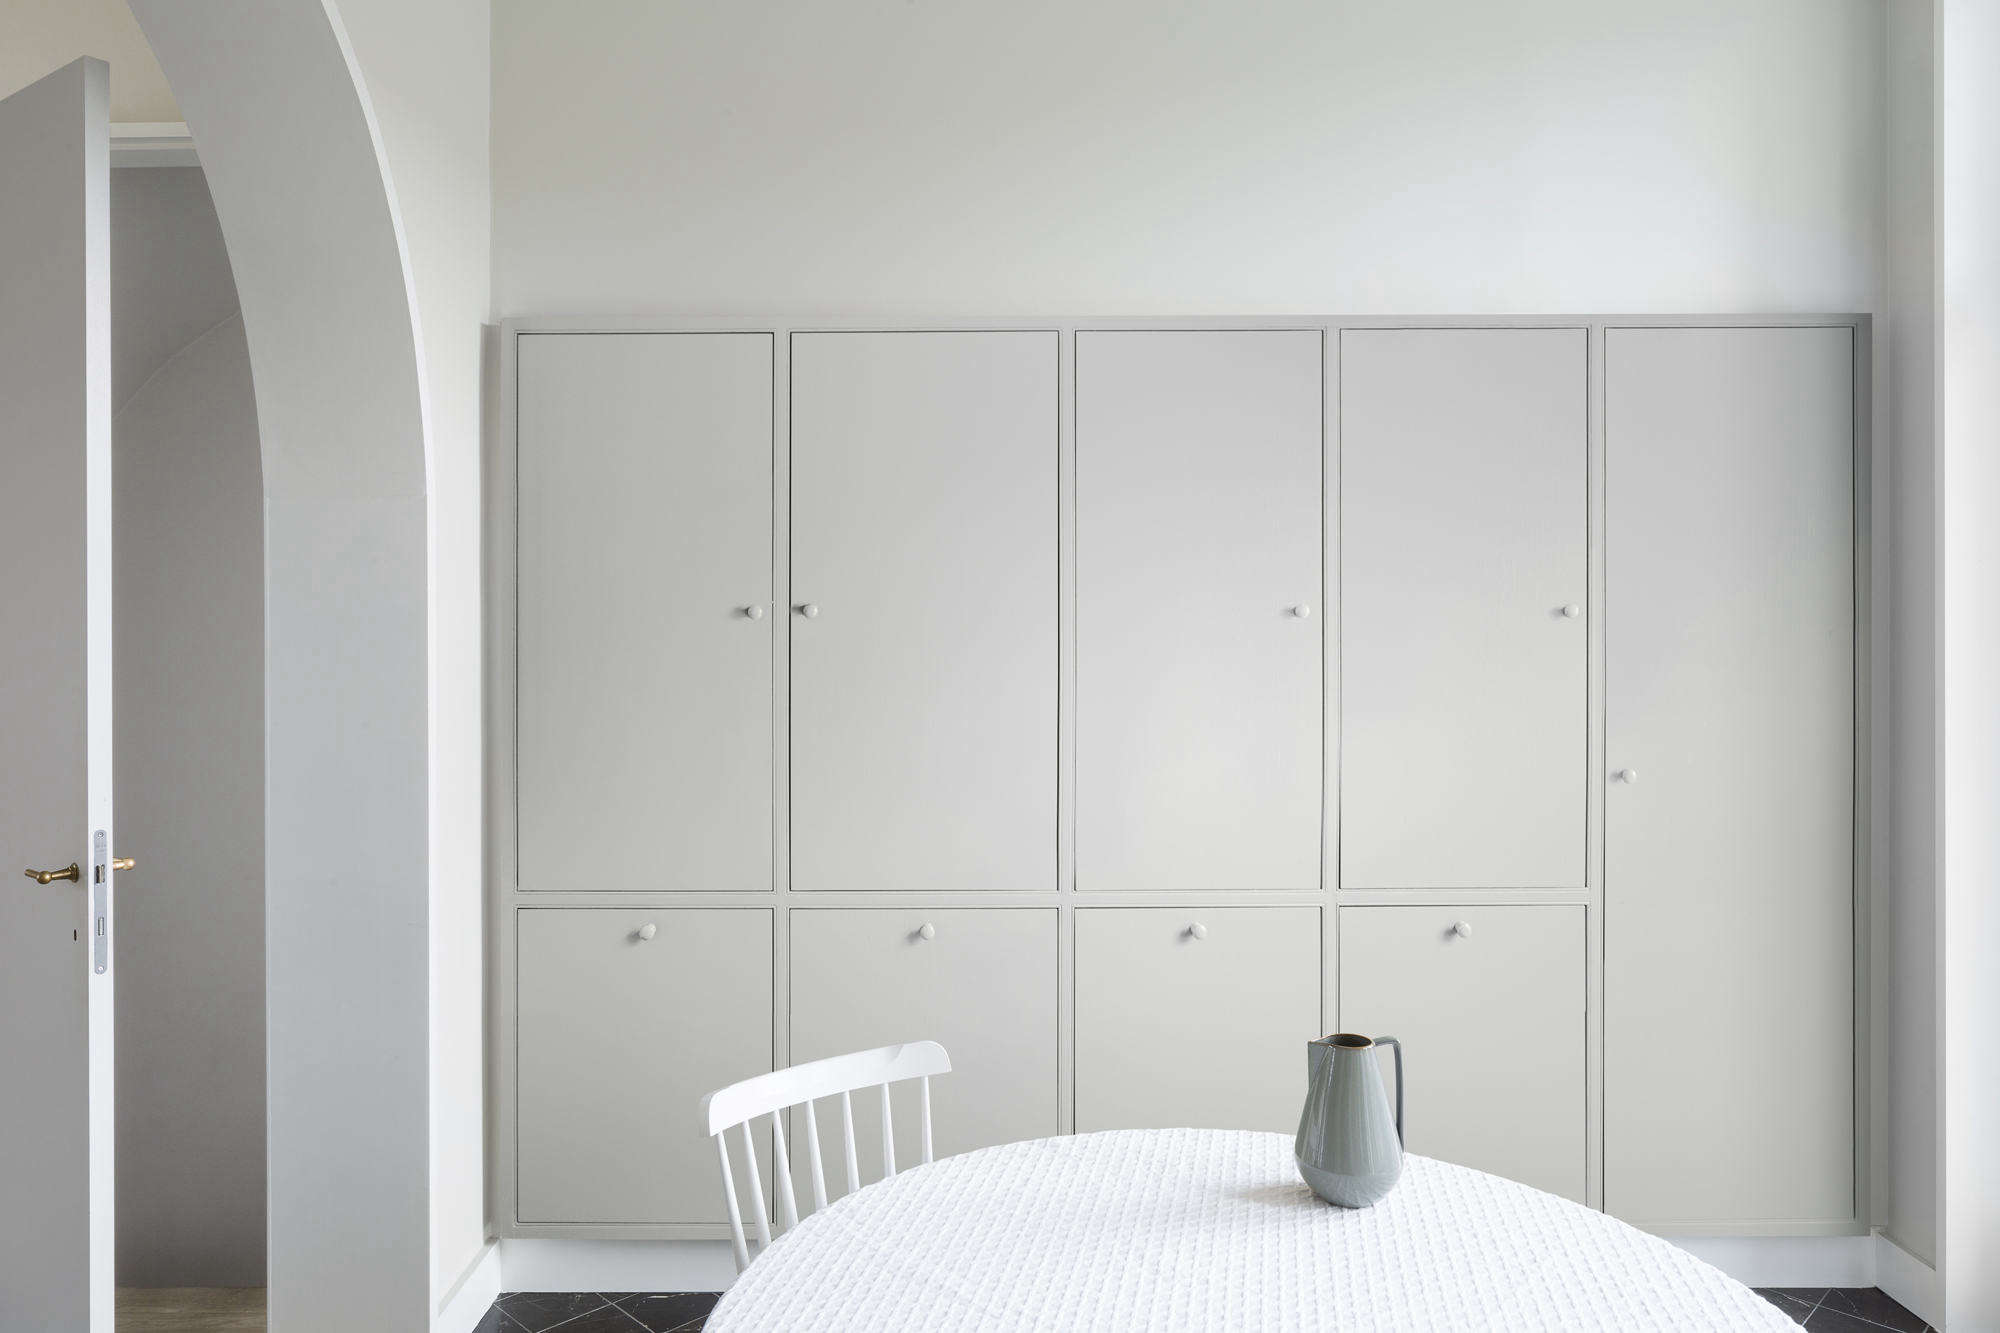 Kitchen Cabinets of Casinoplein House in Belgium by Buyse Seghers Architecten, Photo by Frederik Vercruysse